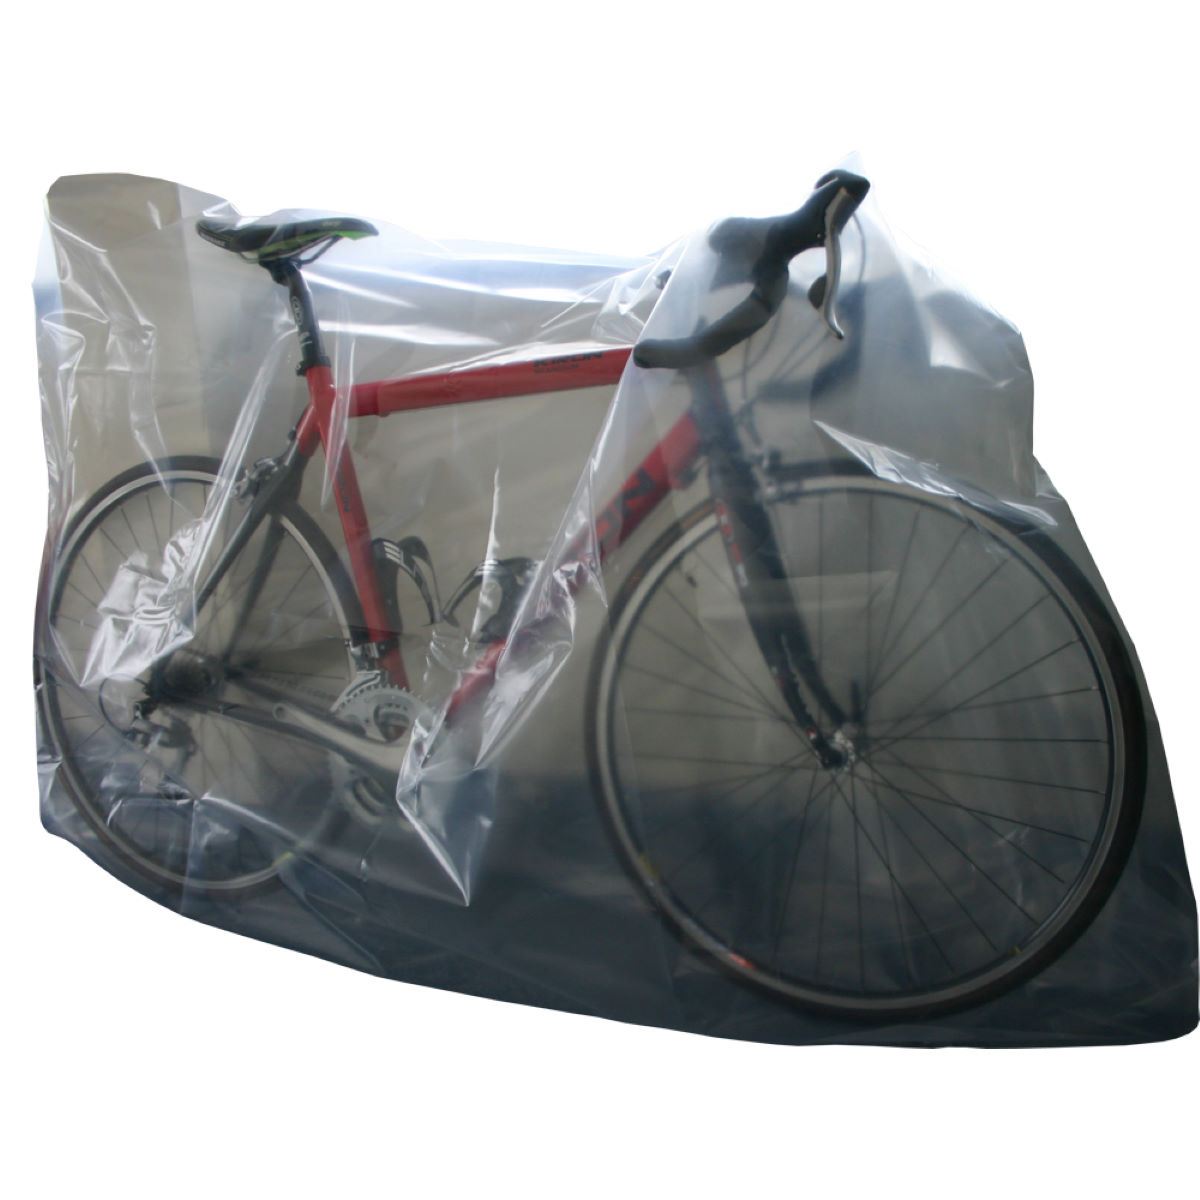 CTC Plastic Bike Bag